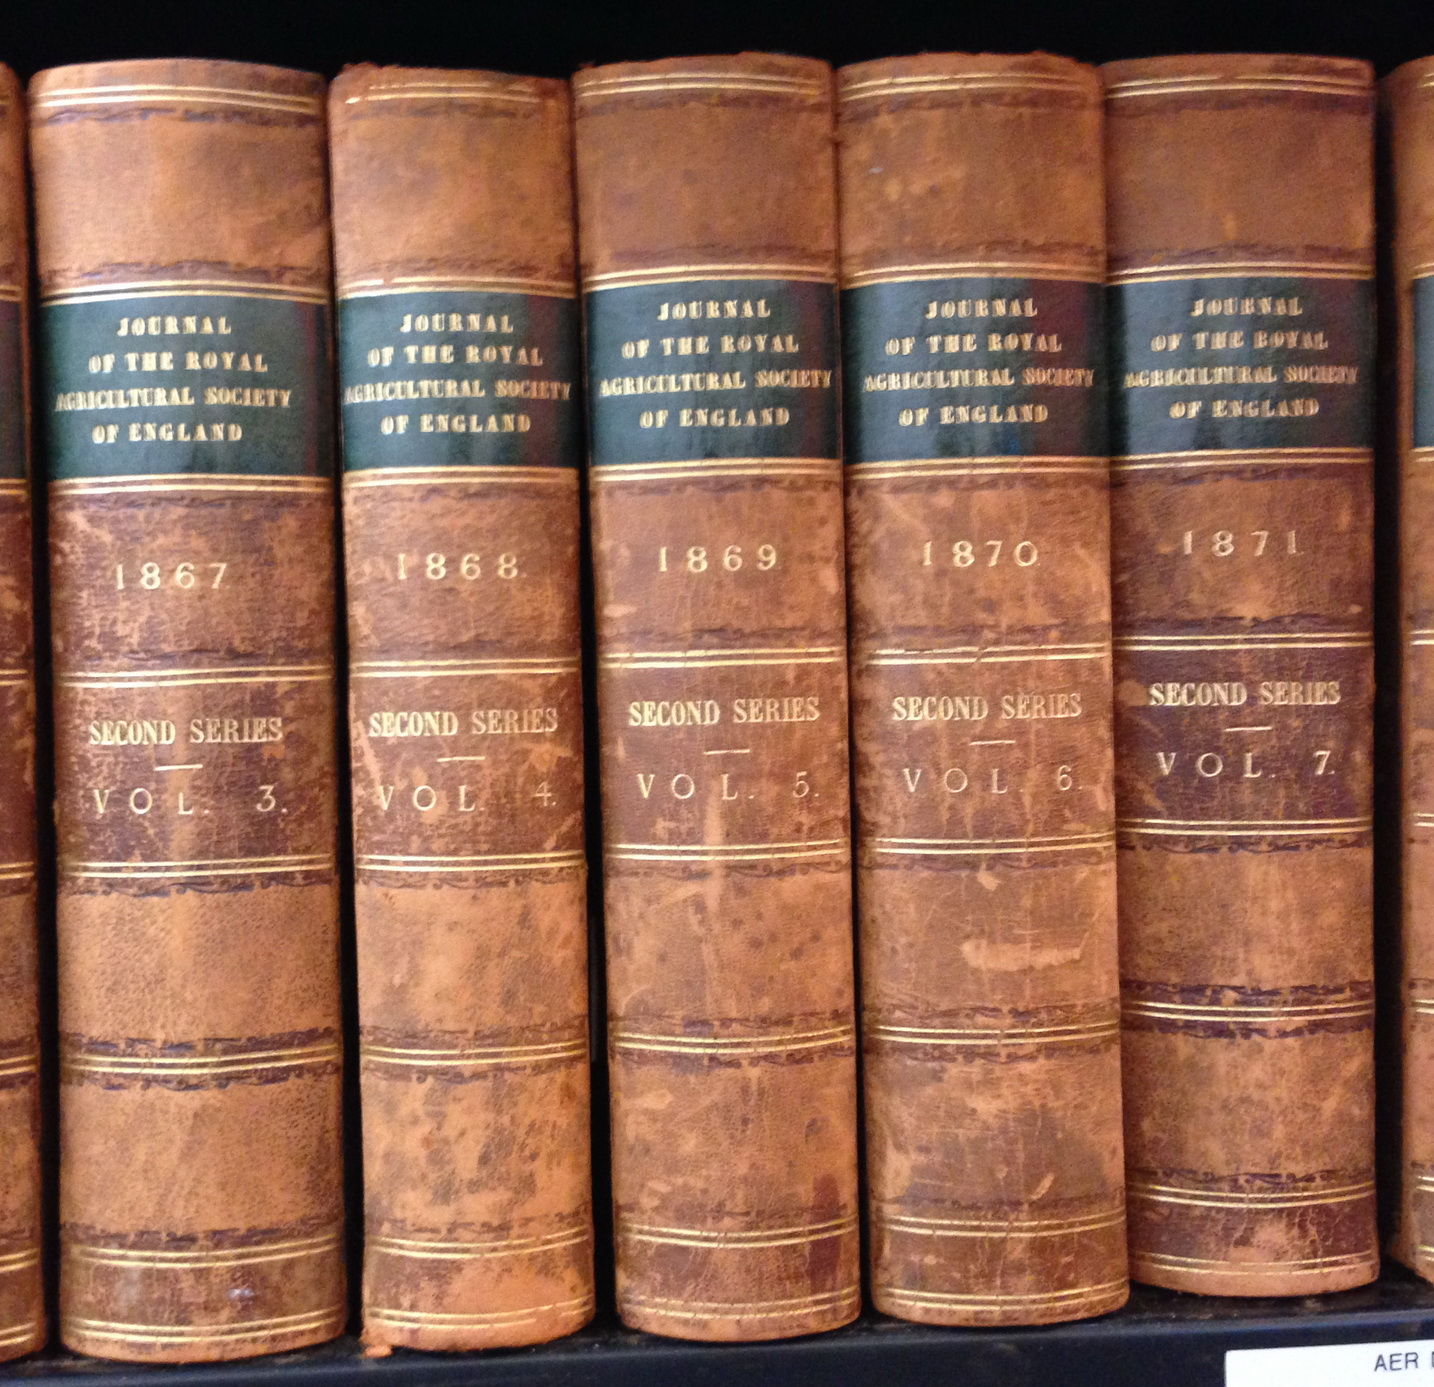 The Journal of the Royal Agricultural Society of England. Volume 19 - Volume 25 (1858 - 1864)